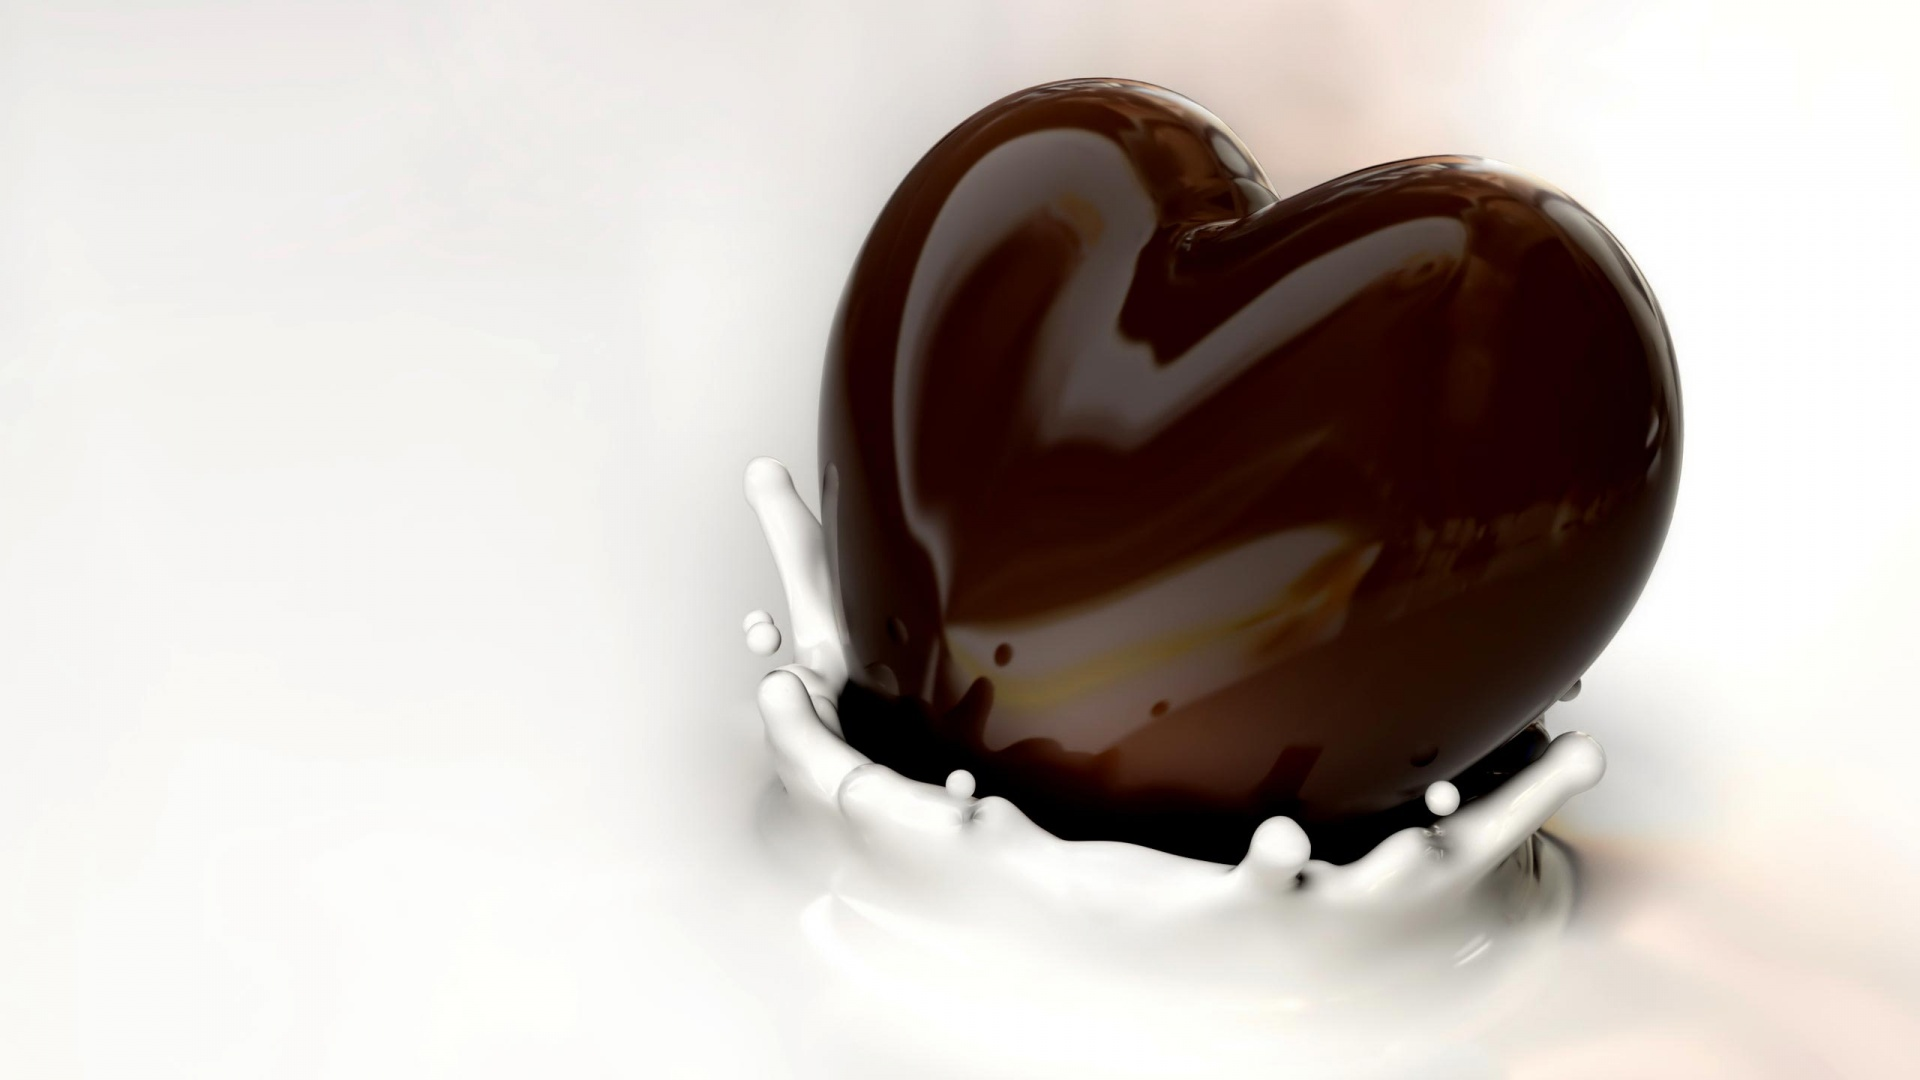 Valentine Heart Chocolate Pictures HD Wallpaper of Love 1920x1080